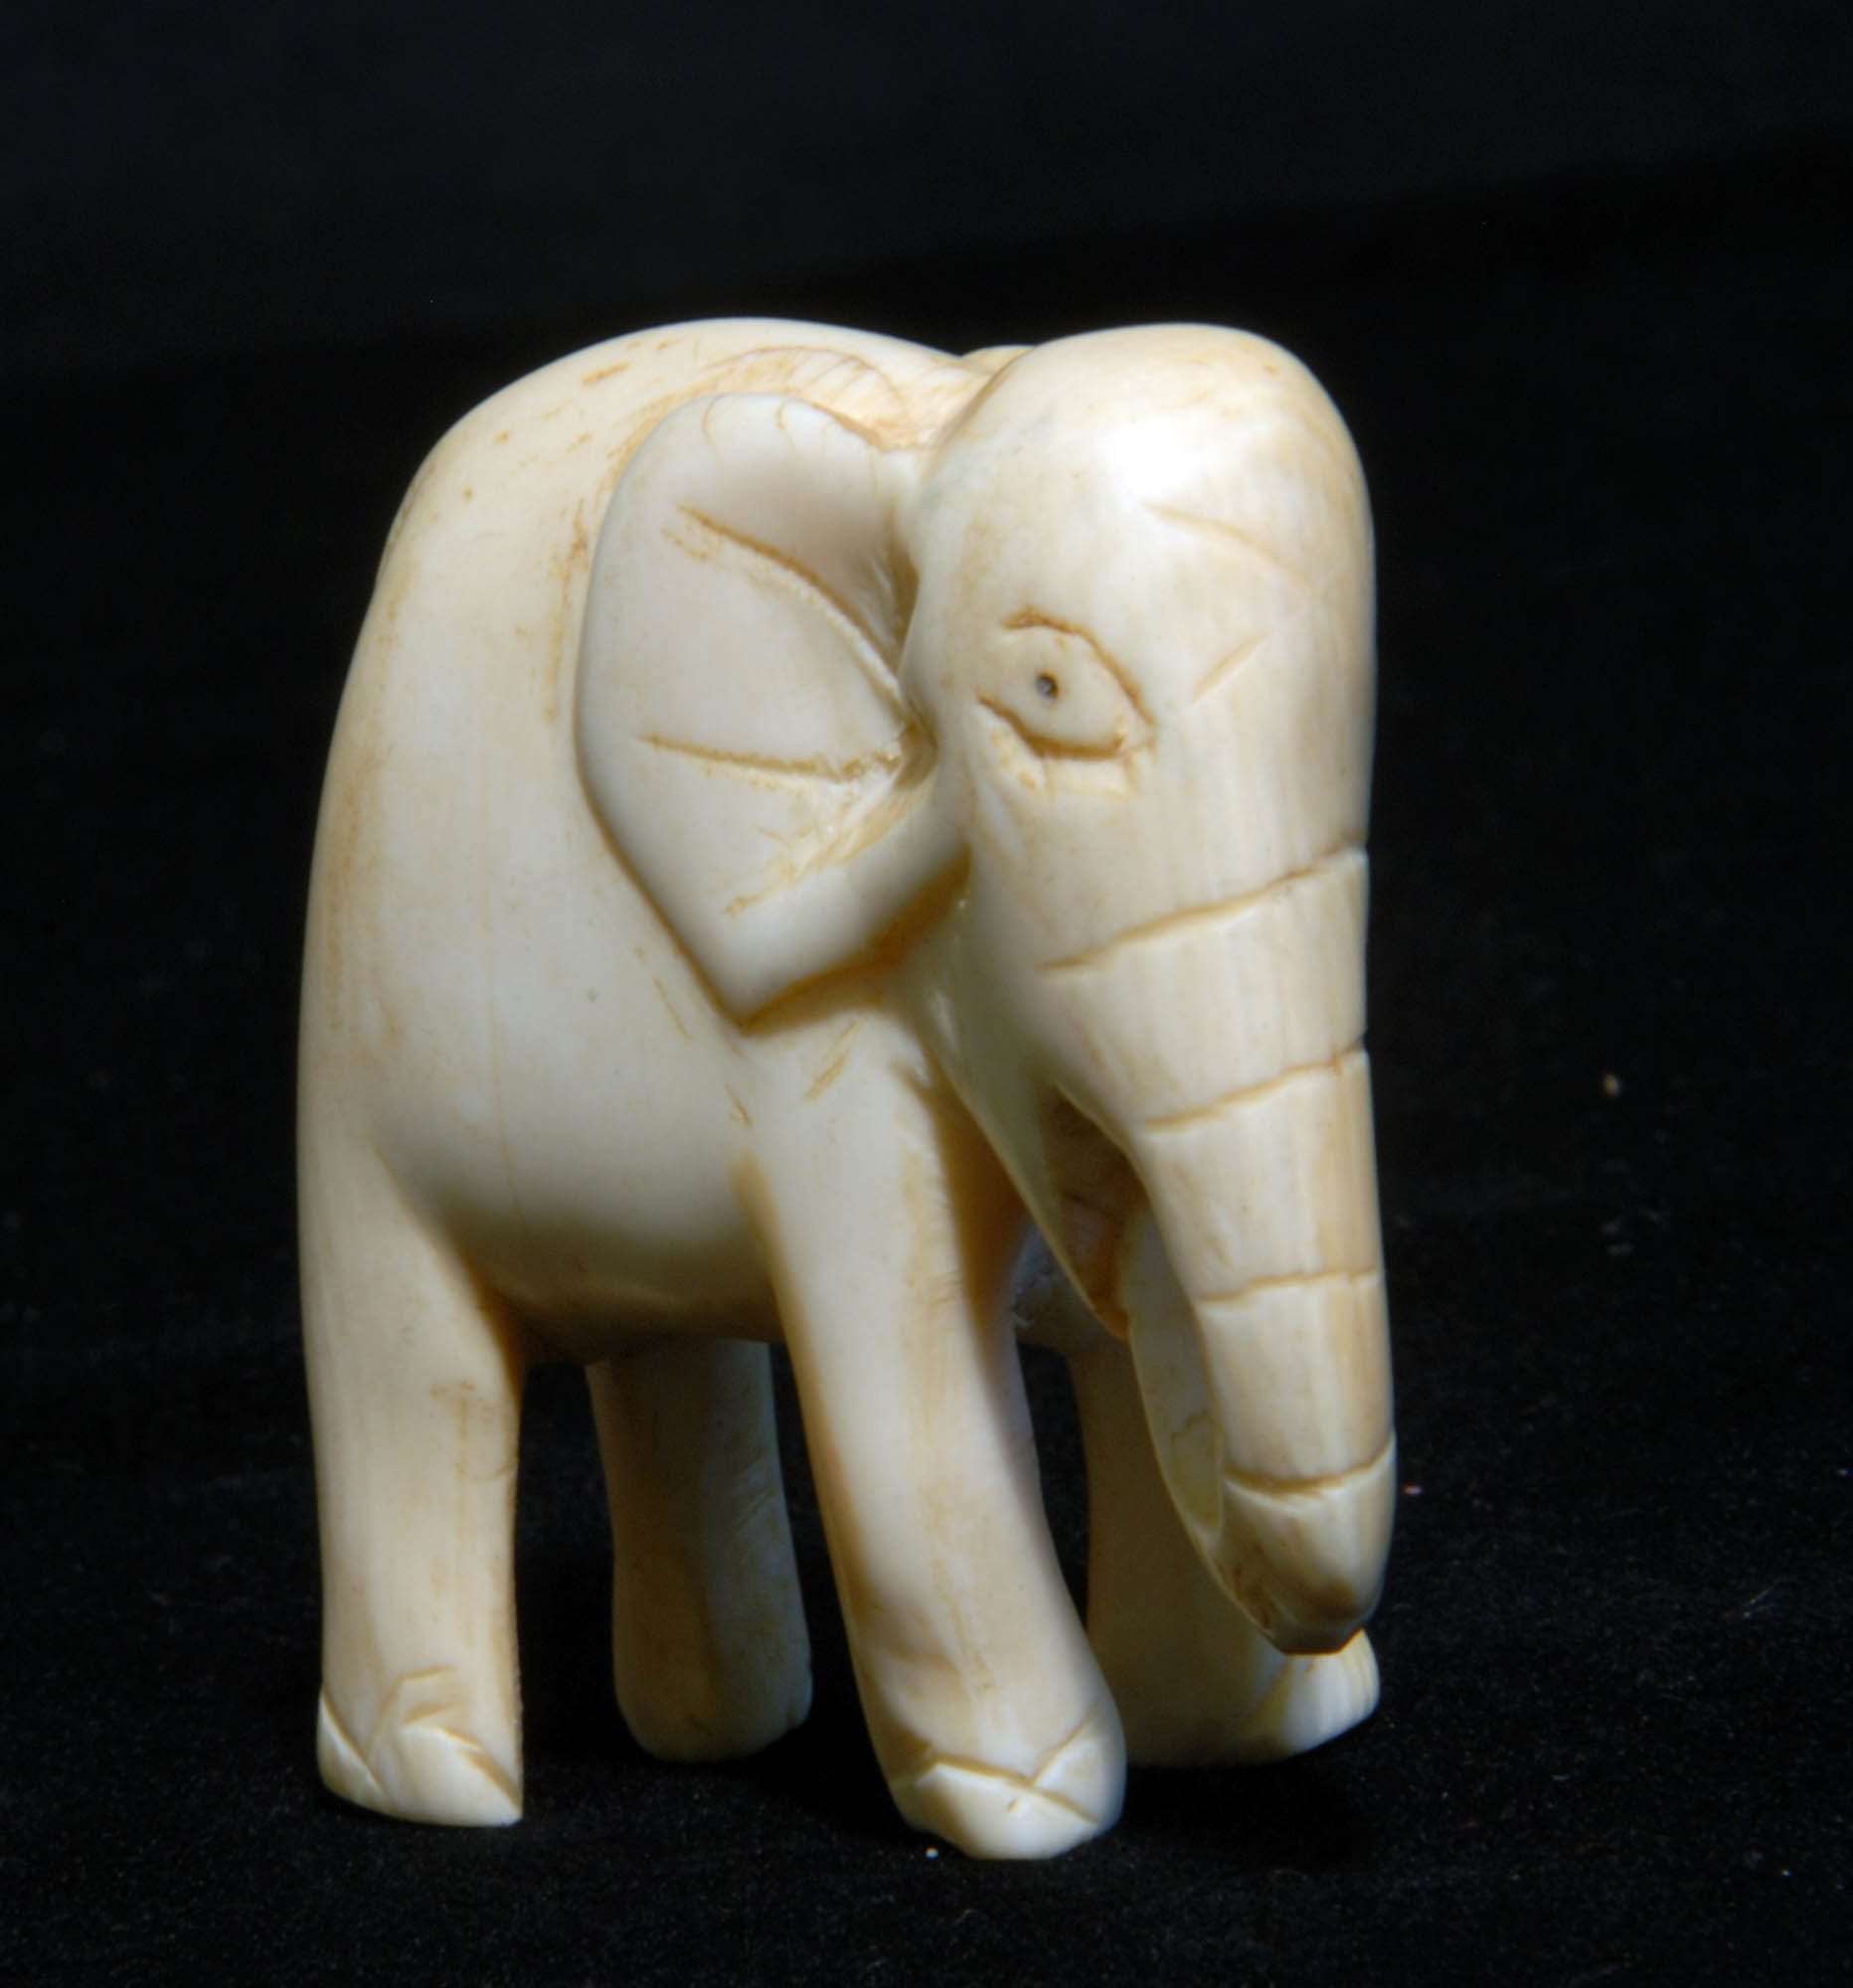 Ivory elephant carving